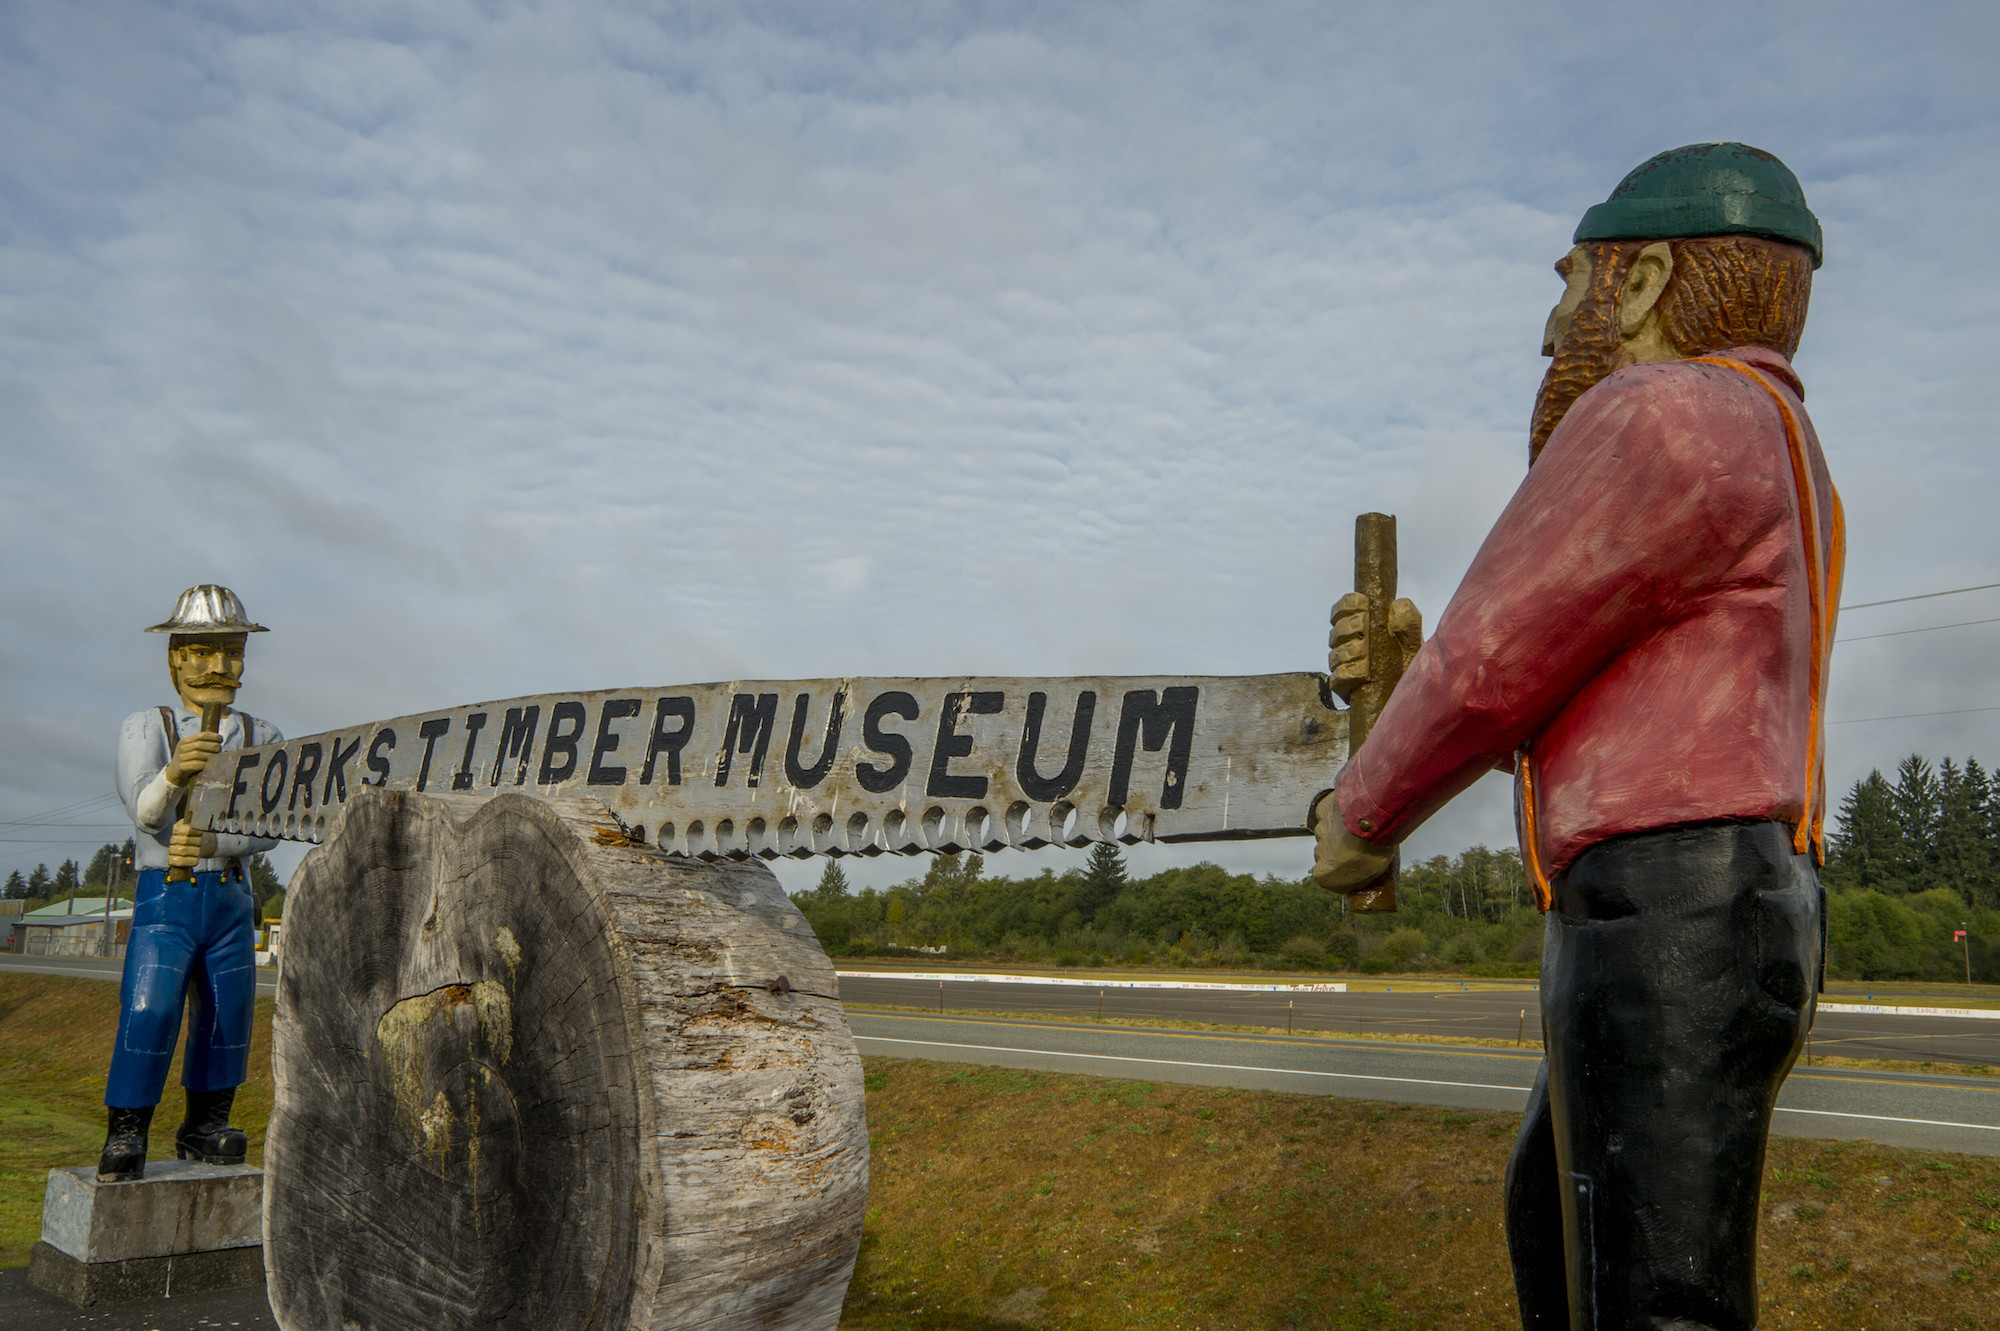 Wooden statue advertising the Forks Timber Museum in Forks, Washington